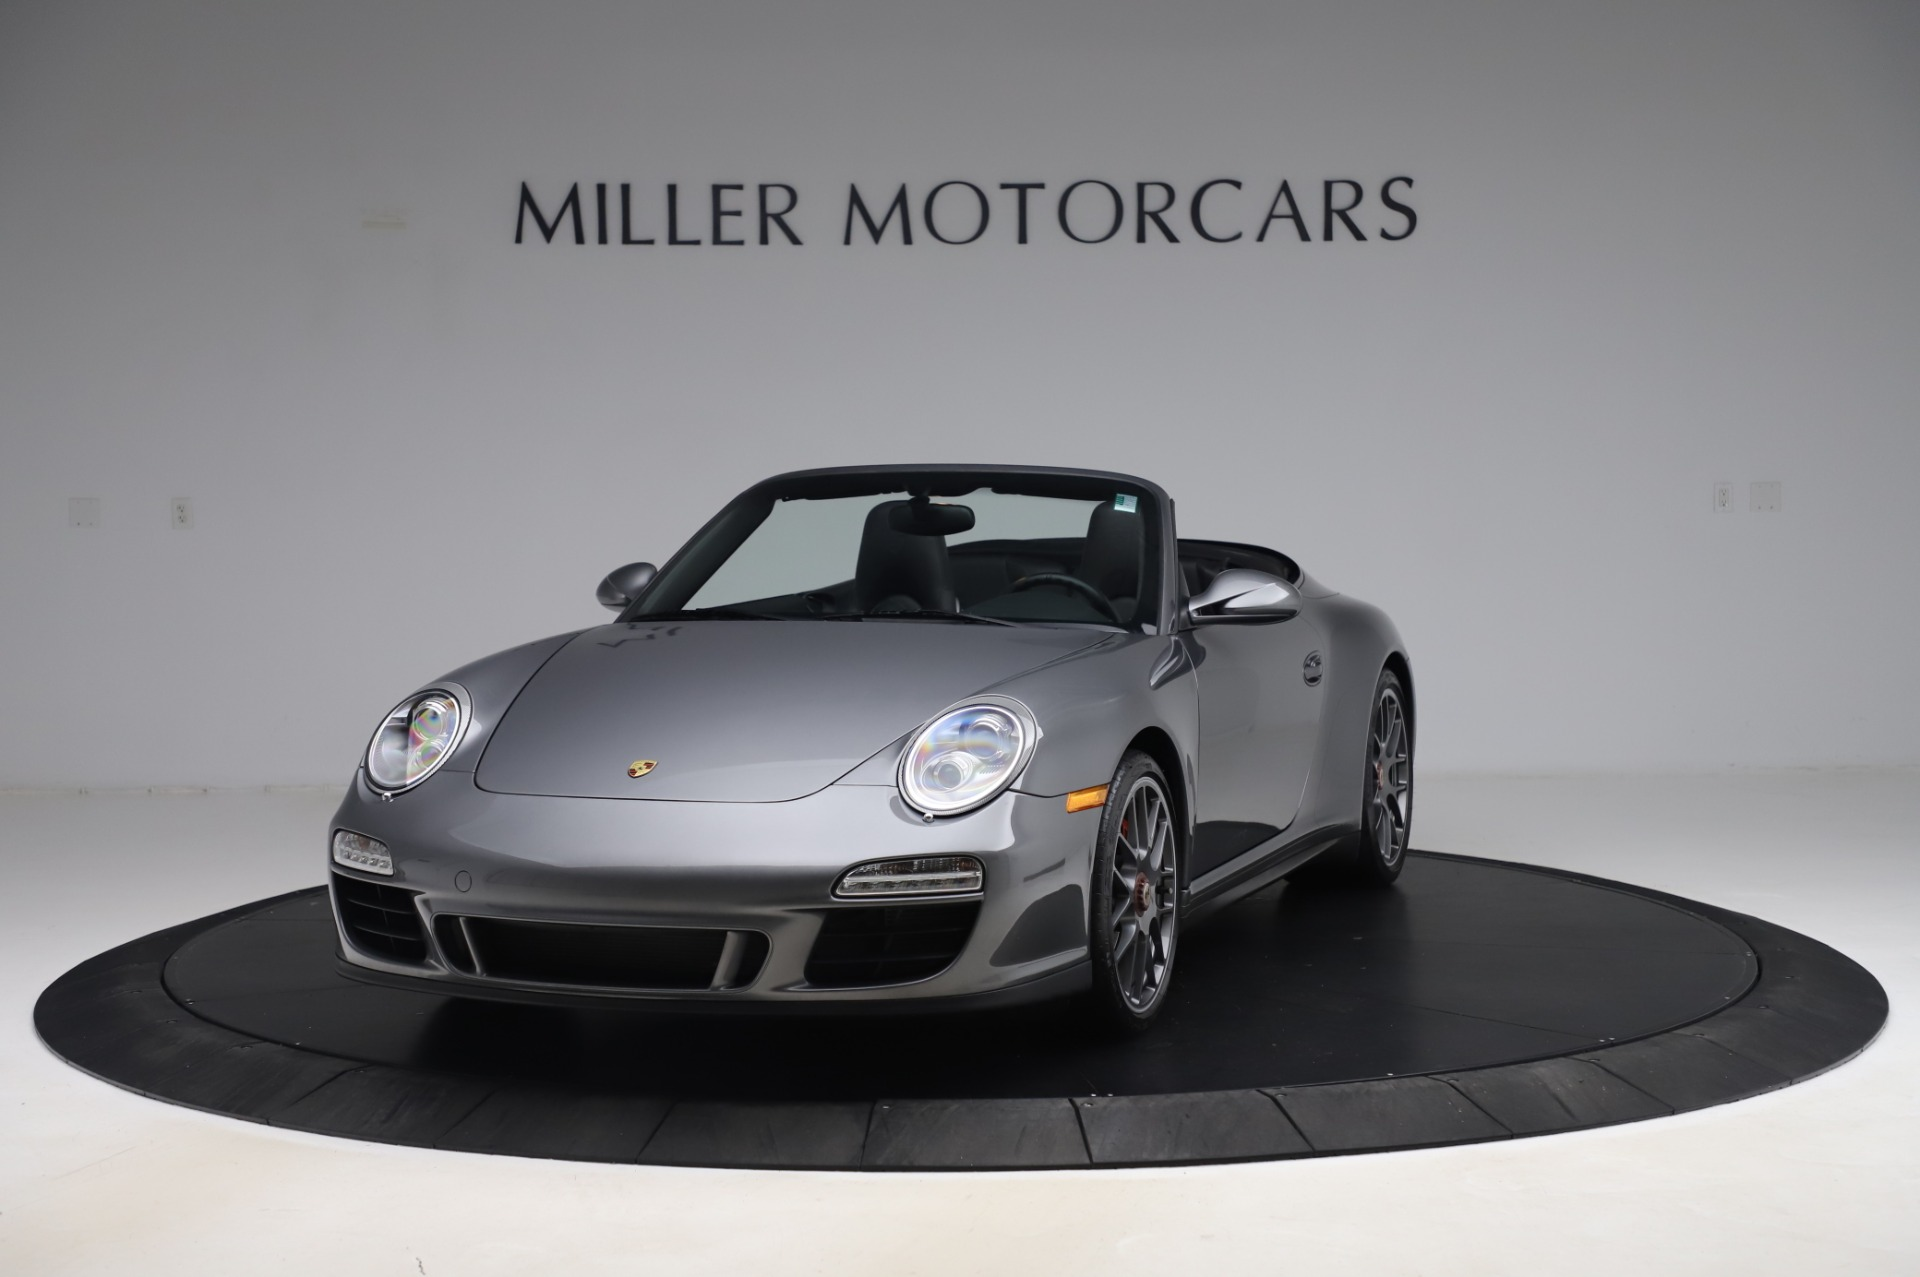 Used 2012 Porsche 911 Carrera 4 GTS for sale $79,900 at Aston Martin of Greenwich in Greenwich CT 06830 1